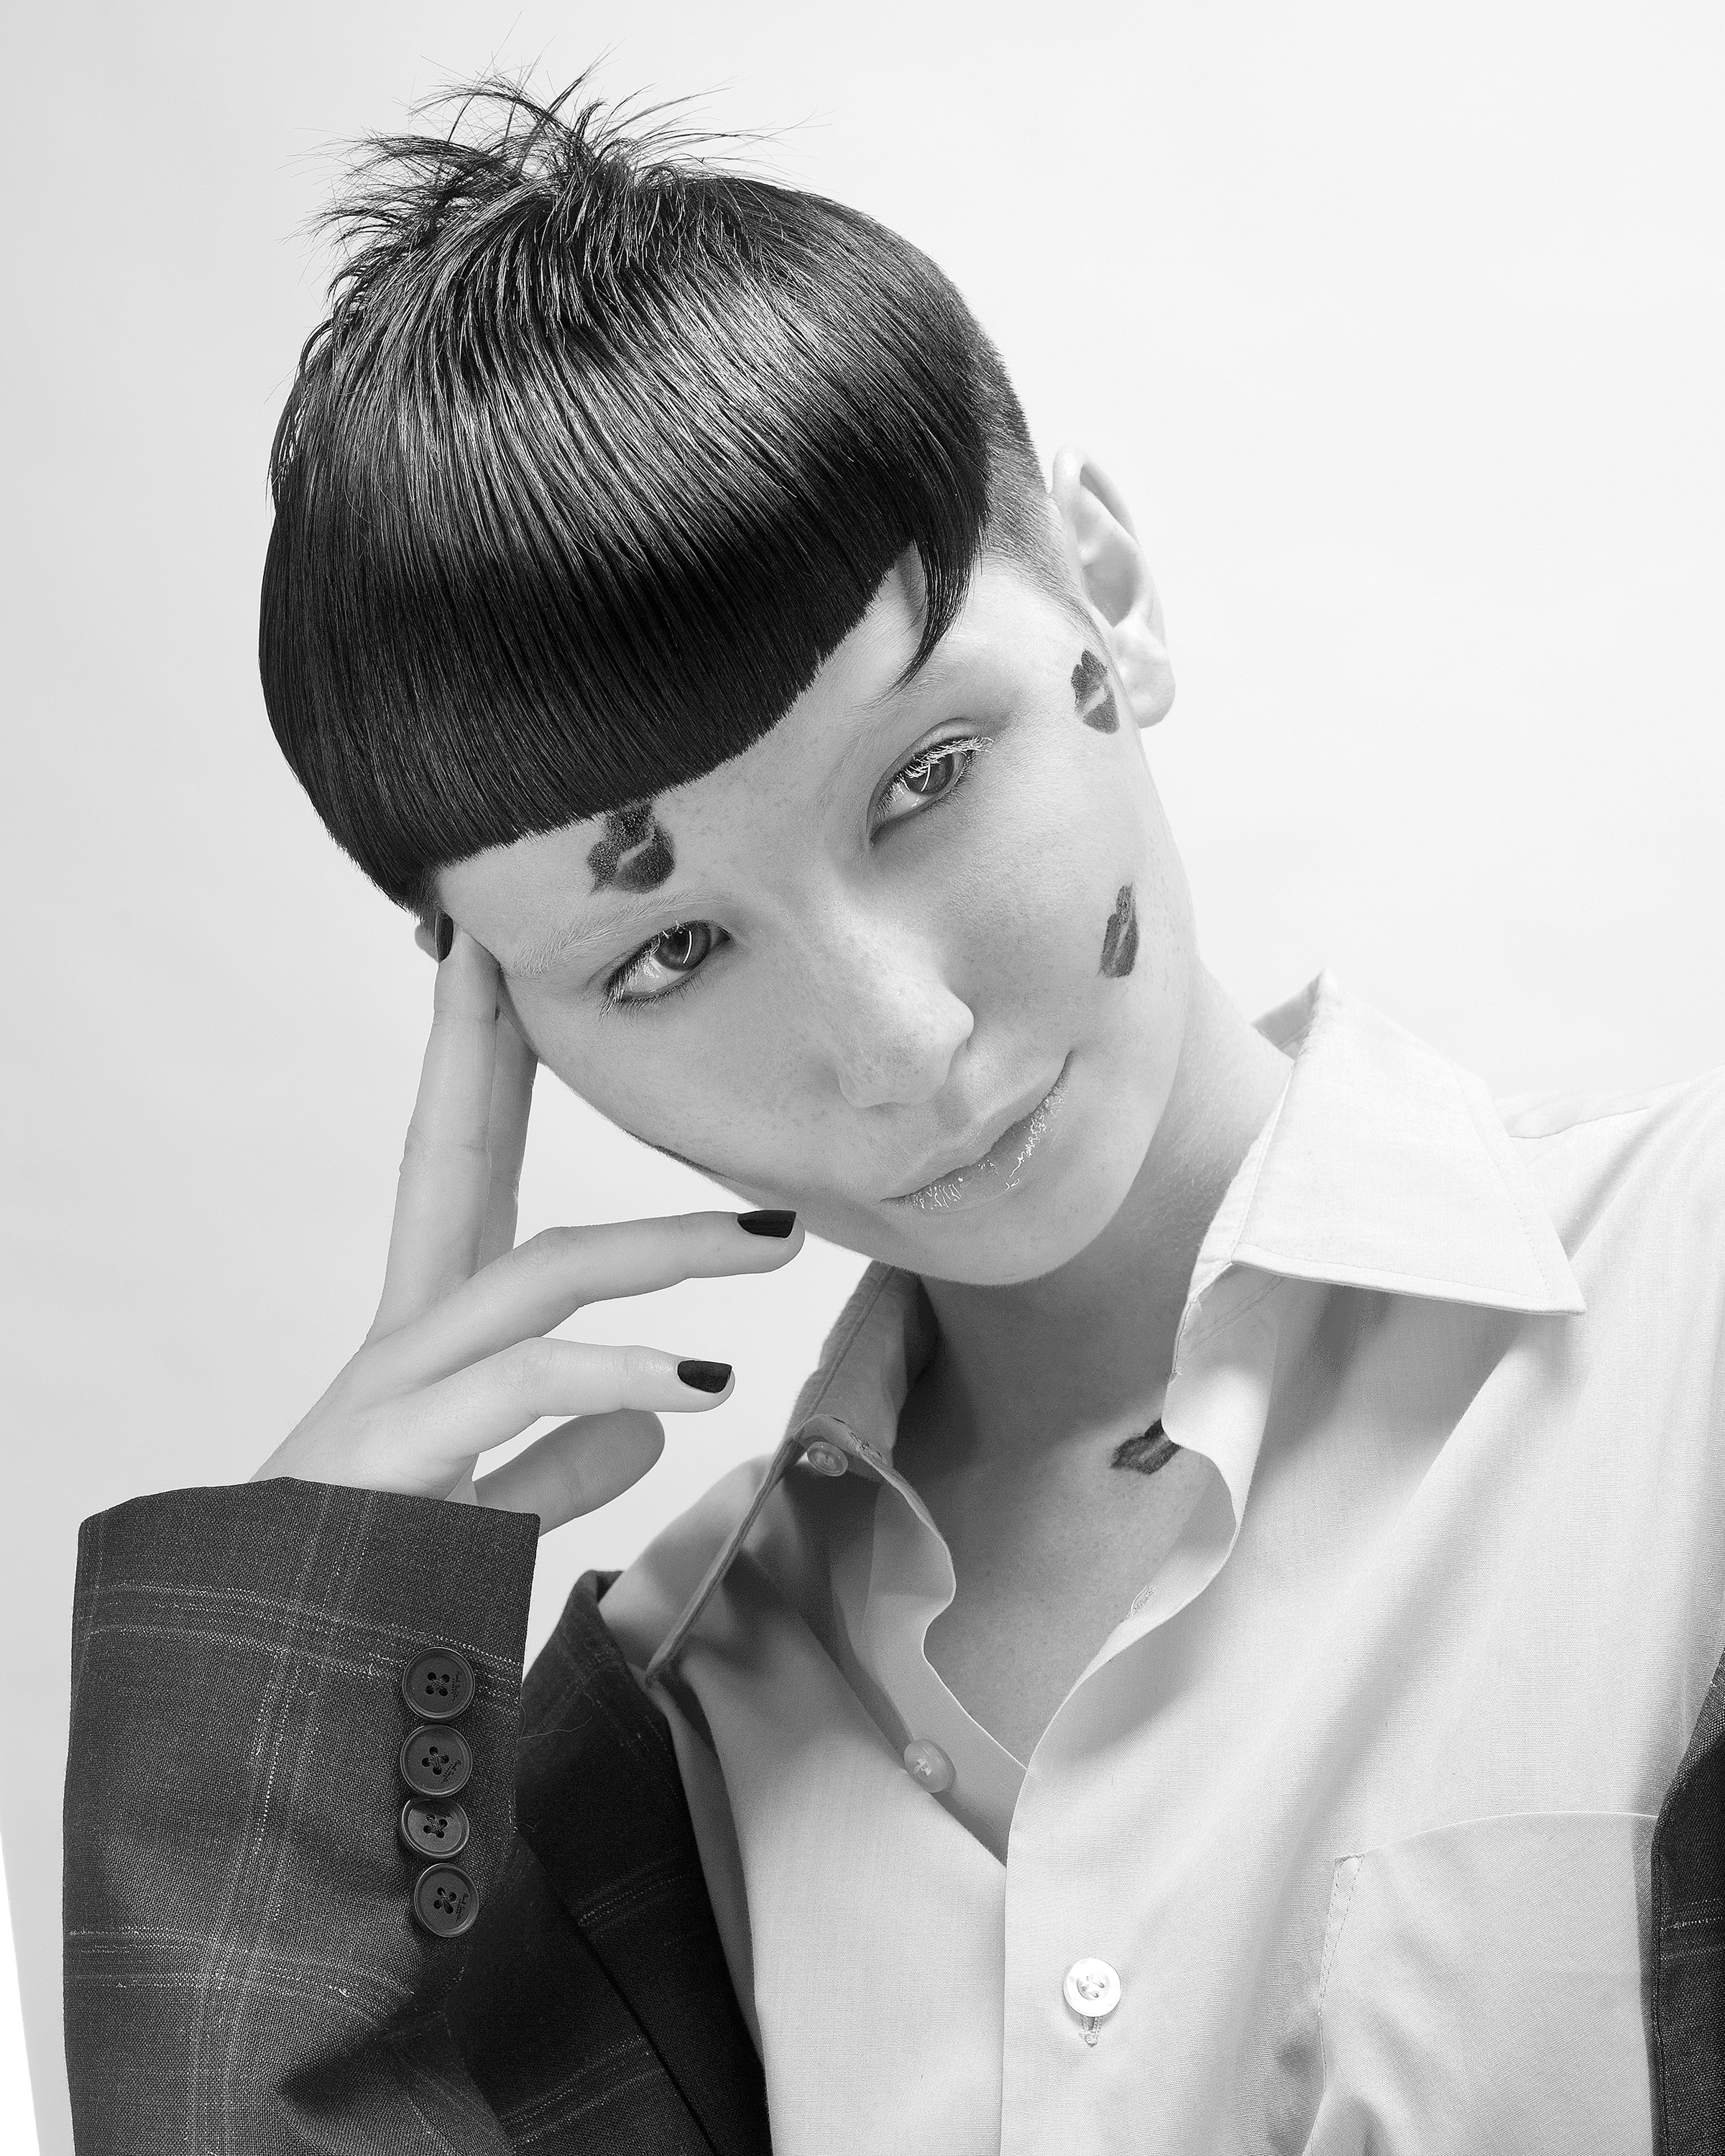 2019 NAHA Finalists: Haircutting